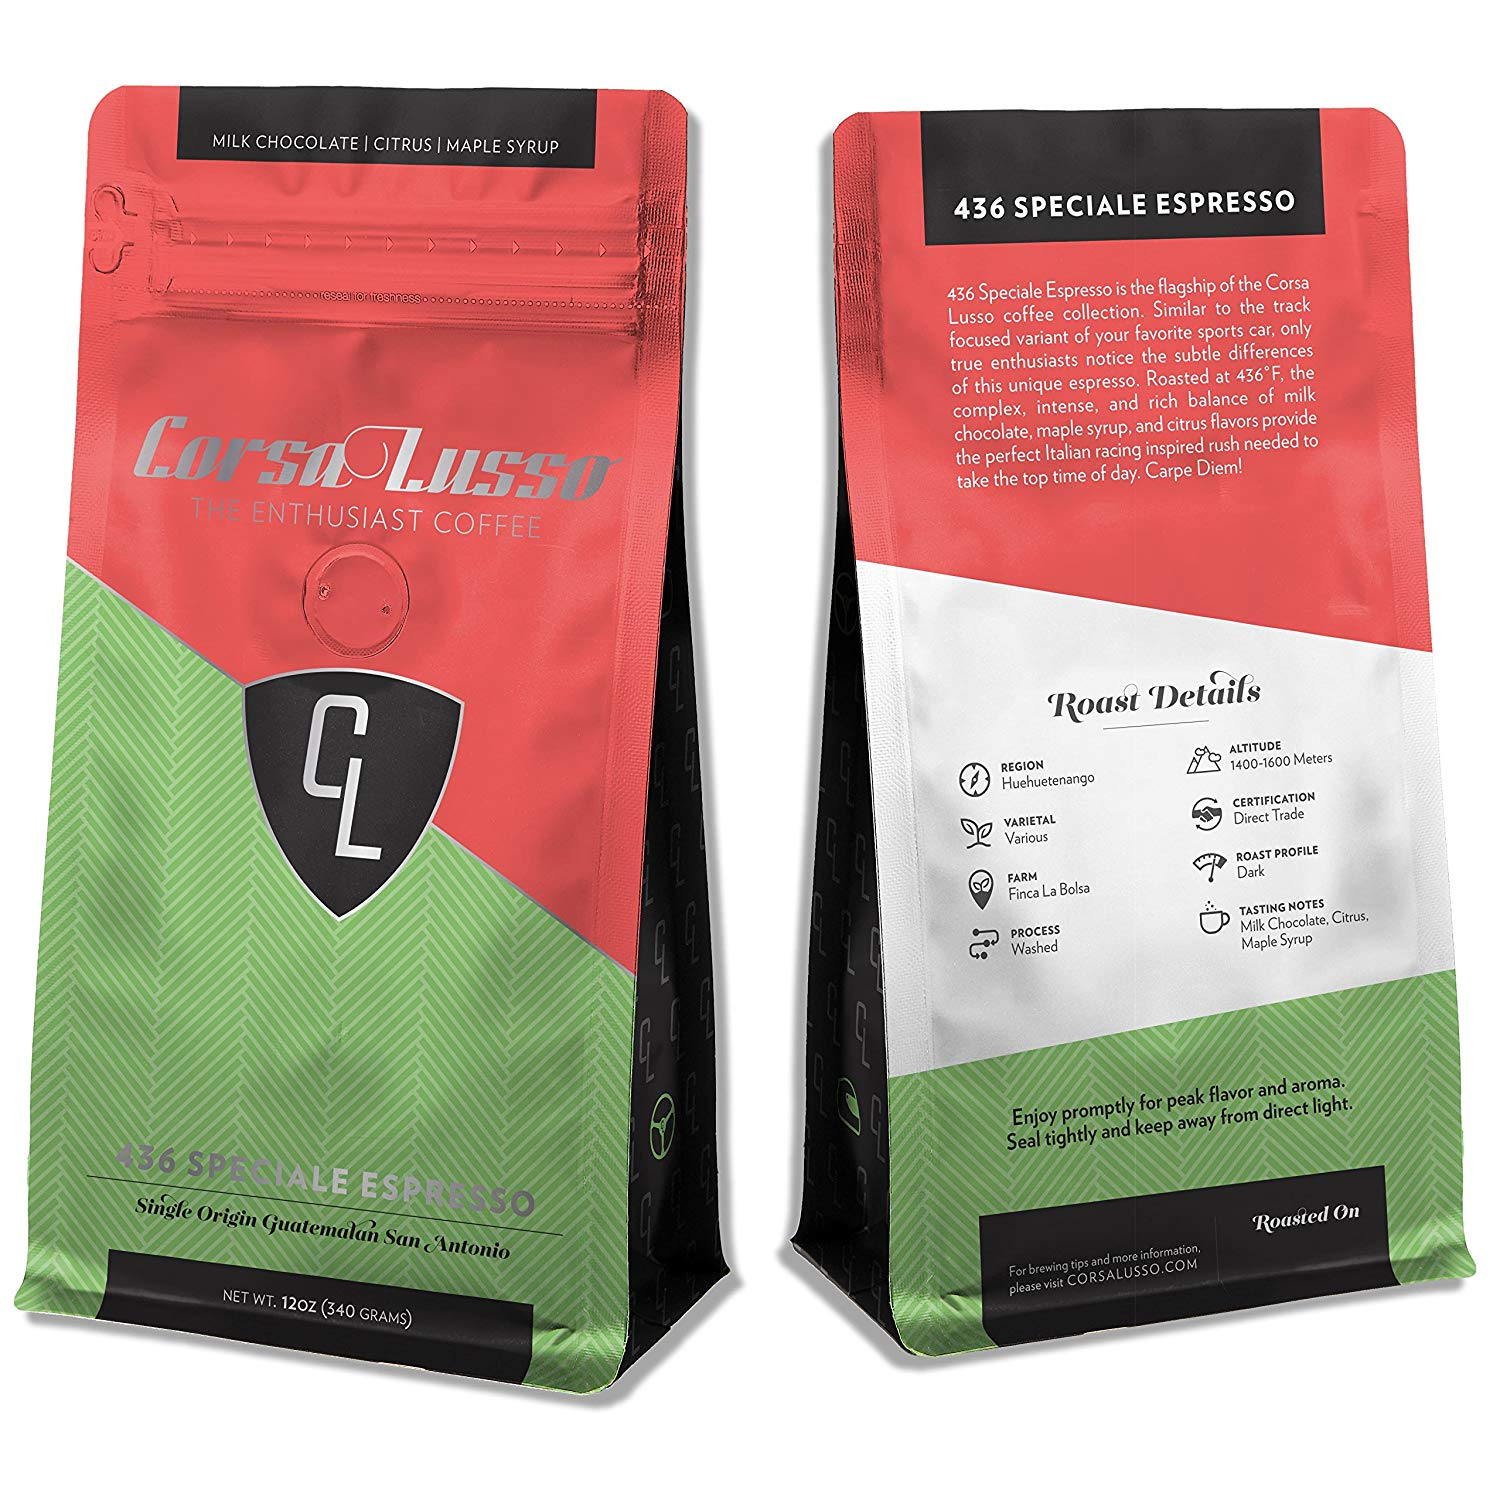 Corsa Lusso: The Enthusiast Coffee, Whole Bean, 12oz - 436 Speciale Espresso - Cars & Coffee, Coffee for Car Enthusiasts, Specialty Coffee, Great Gift for Car Lovers!